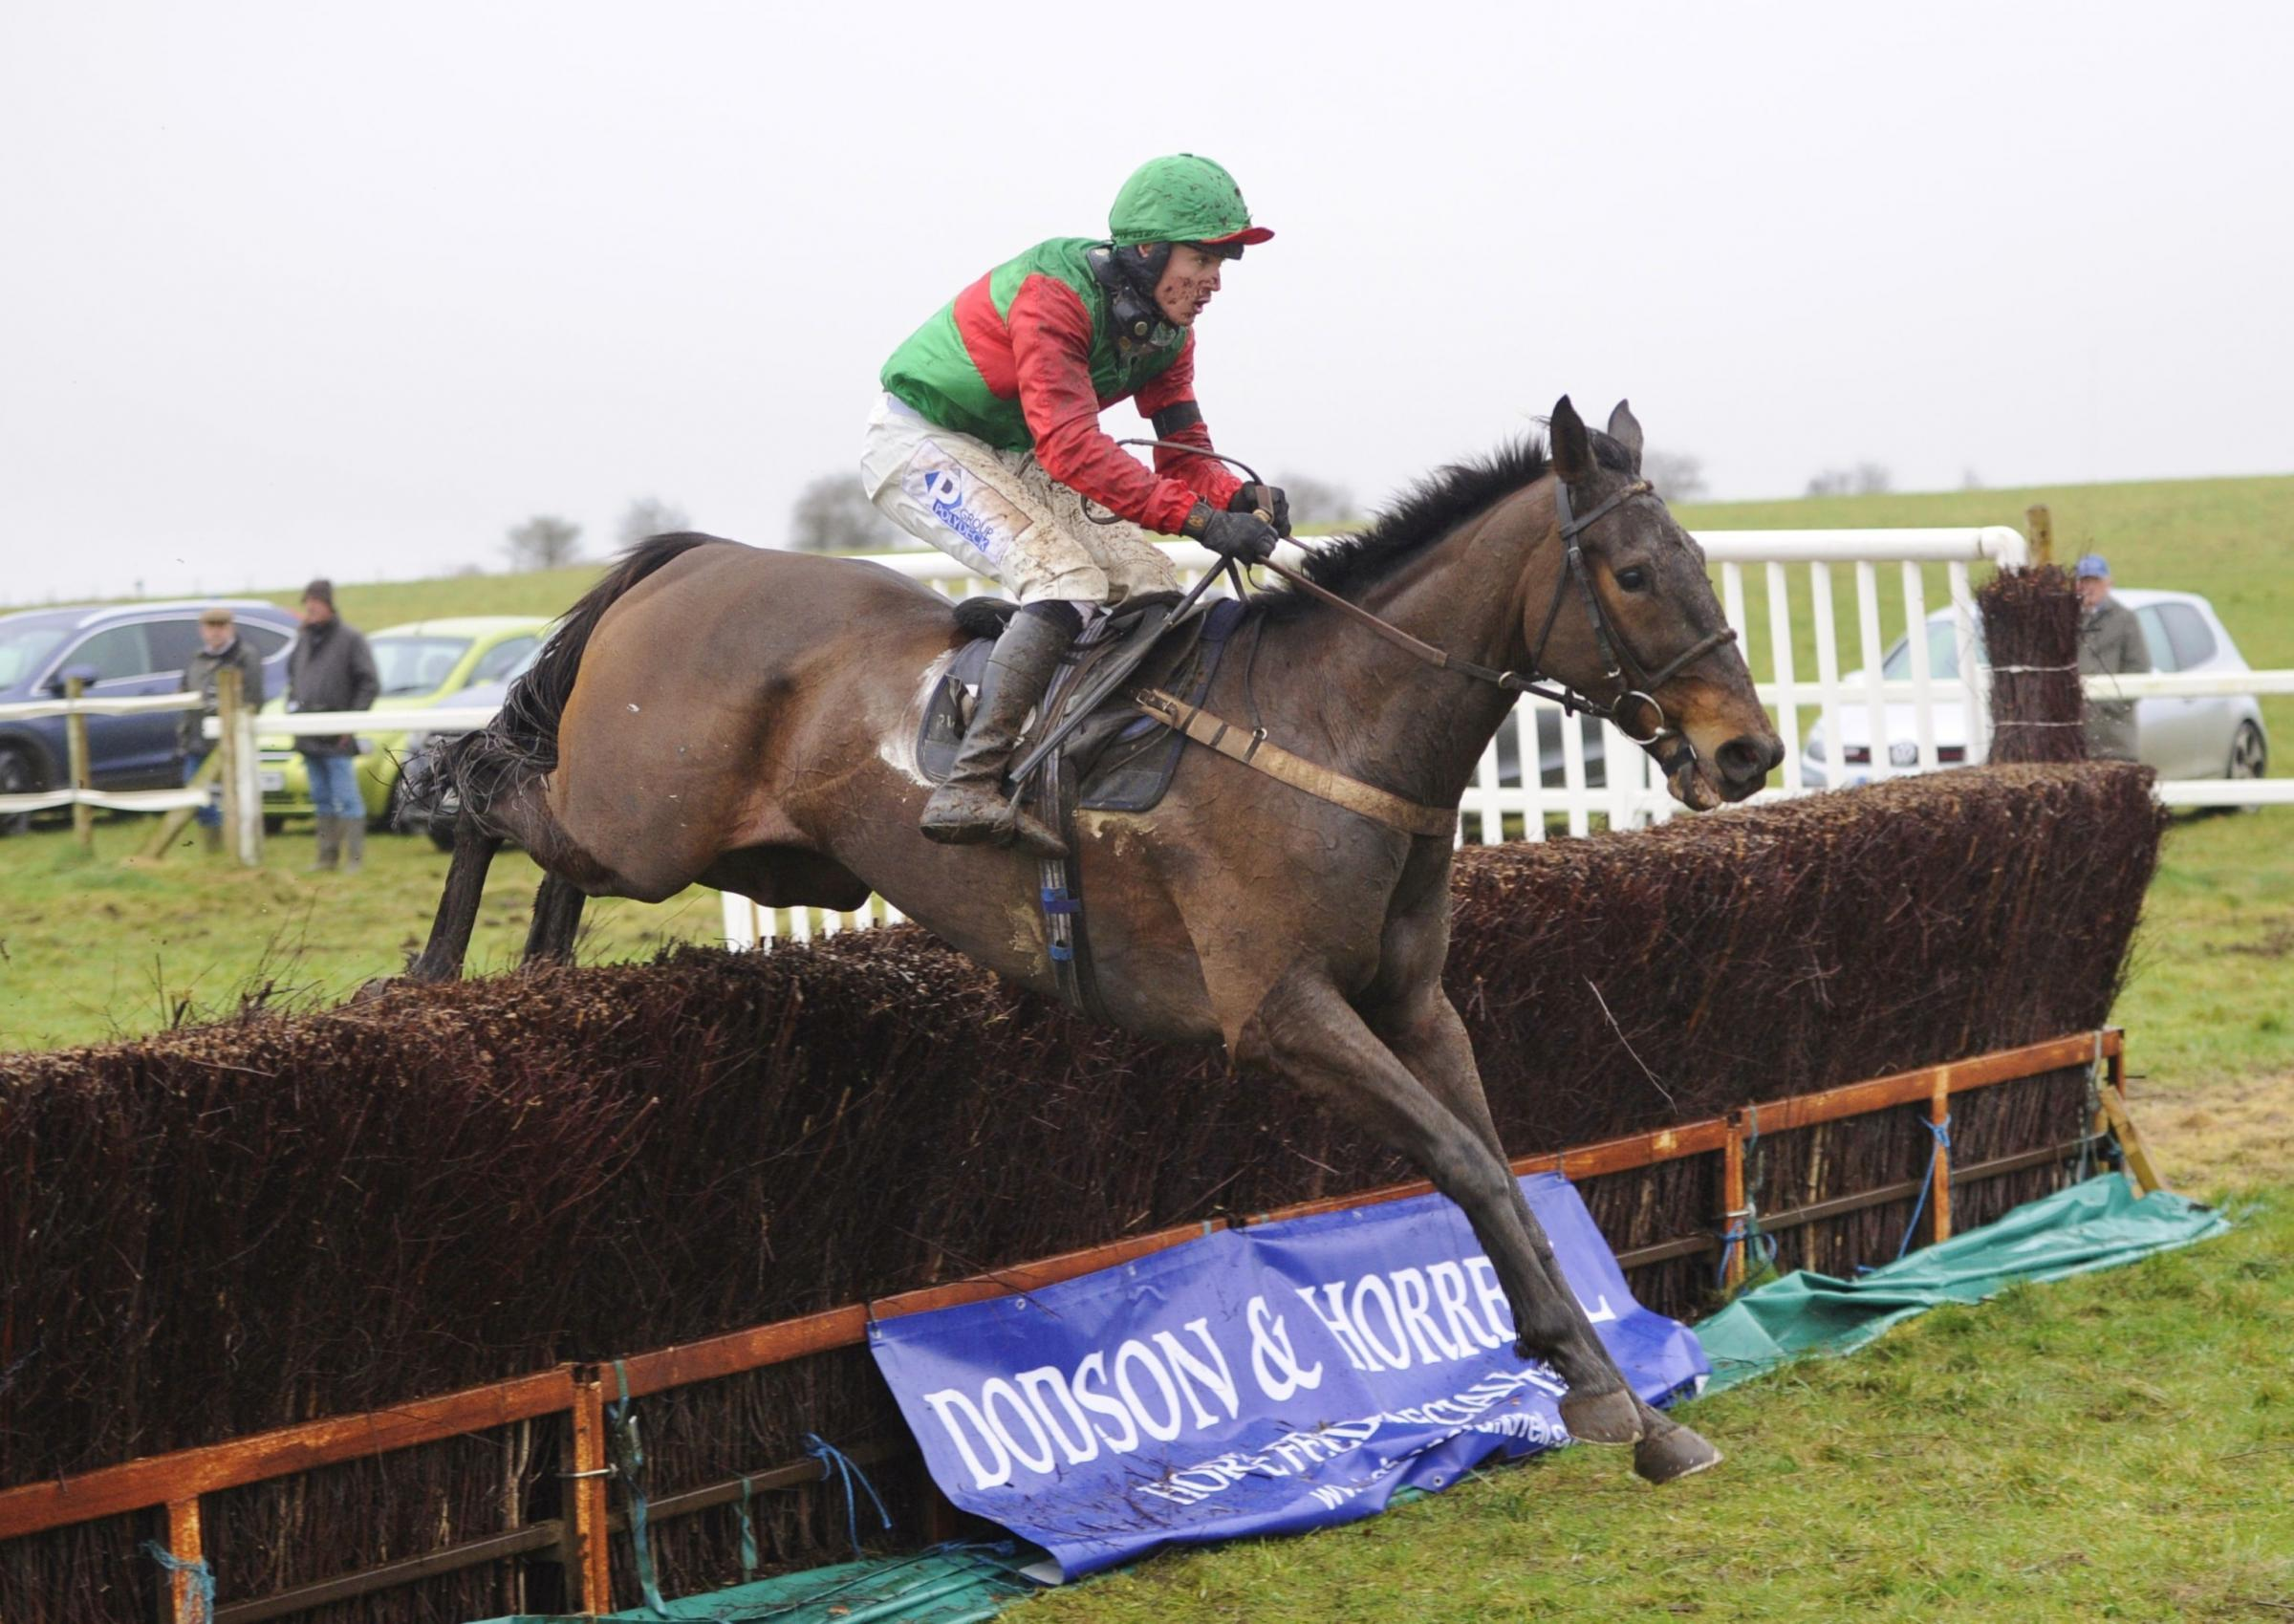 EASY WINNER: Thereyarsee, ridden by Lorcan WilliamsPicture: TIM HOLT